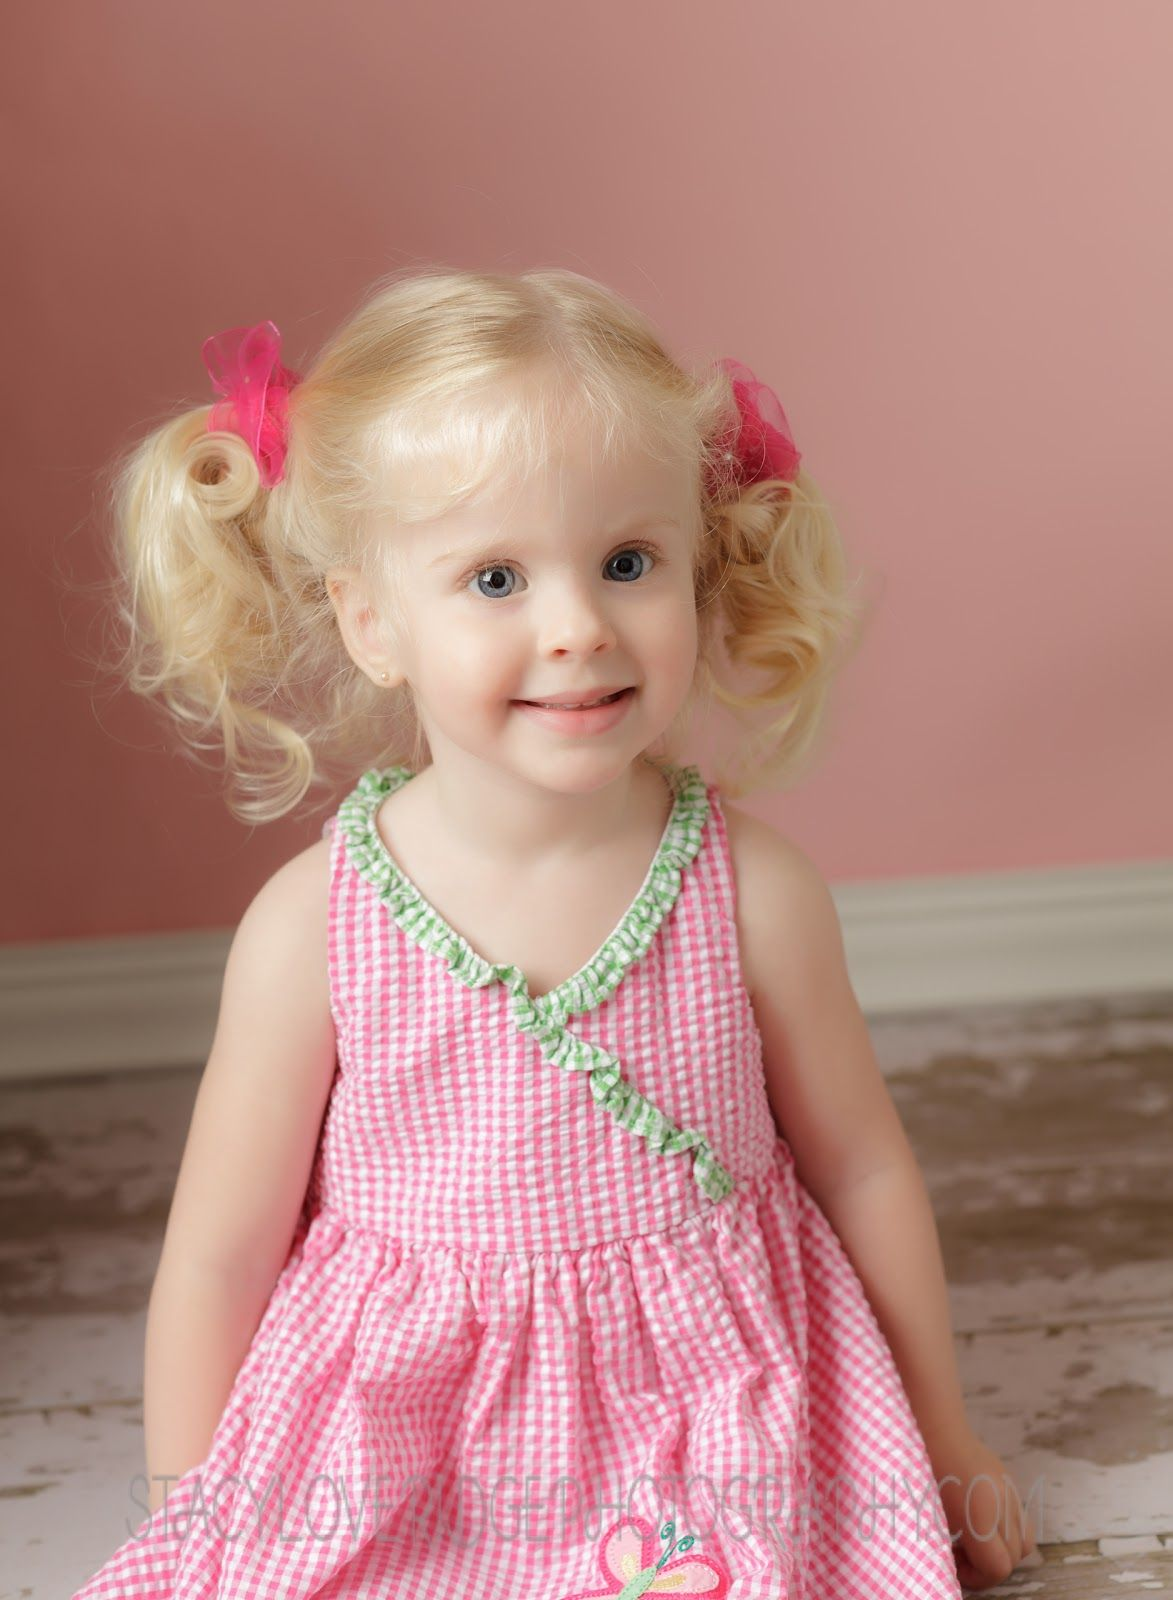 Toddler Girl | Download Freely Sweet lovely girl Pictures ...